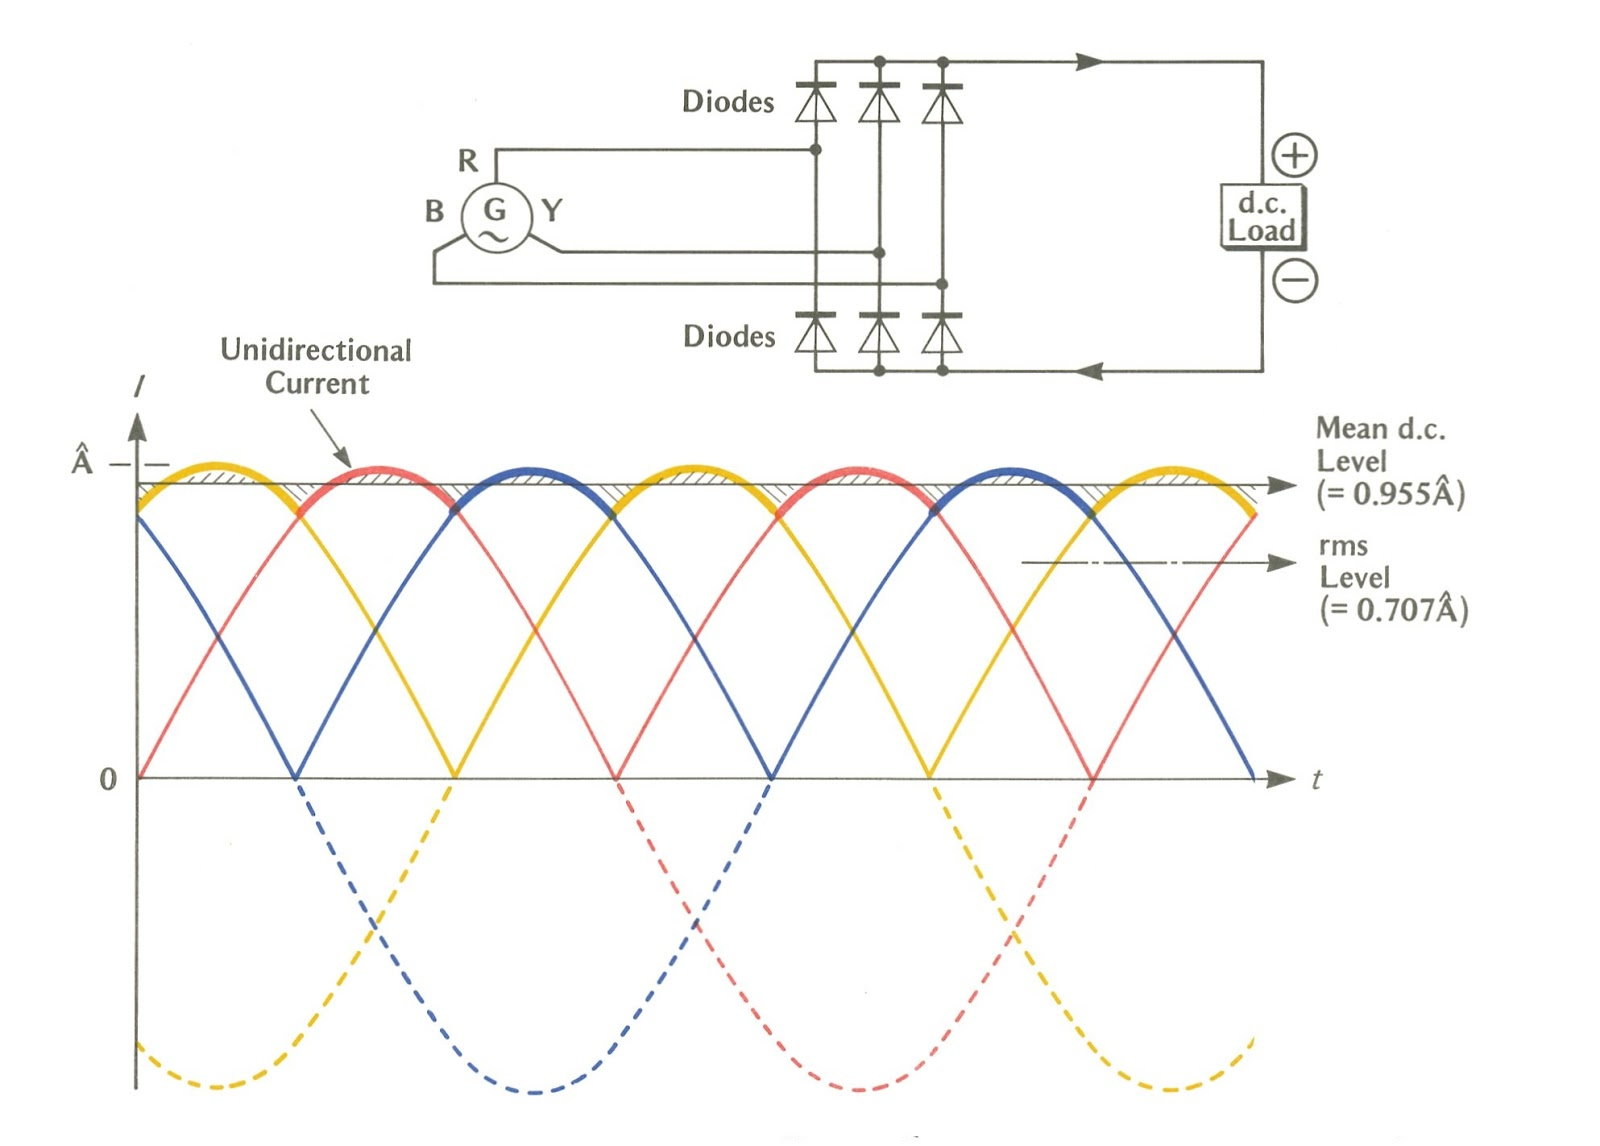 hight resolution of here we have standard 3 phase rectifier with 6 diodes